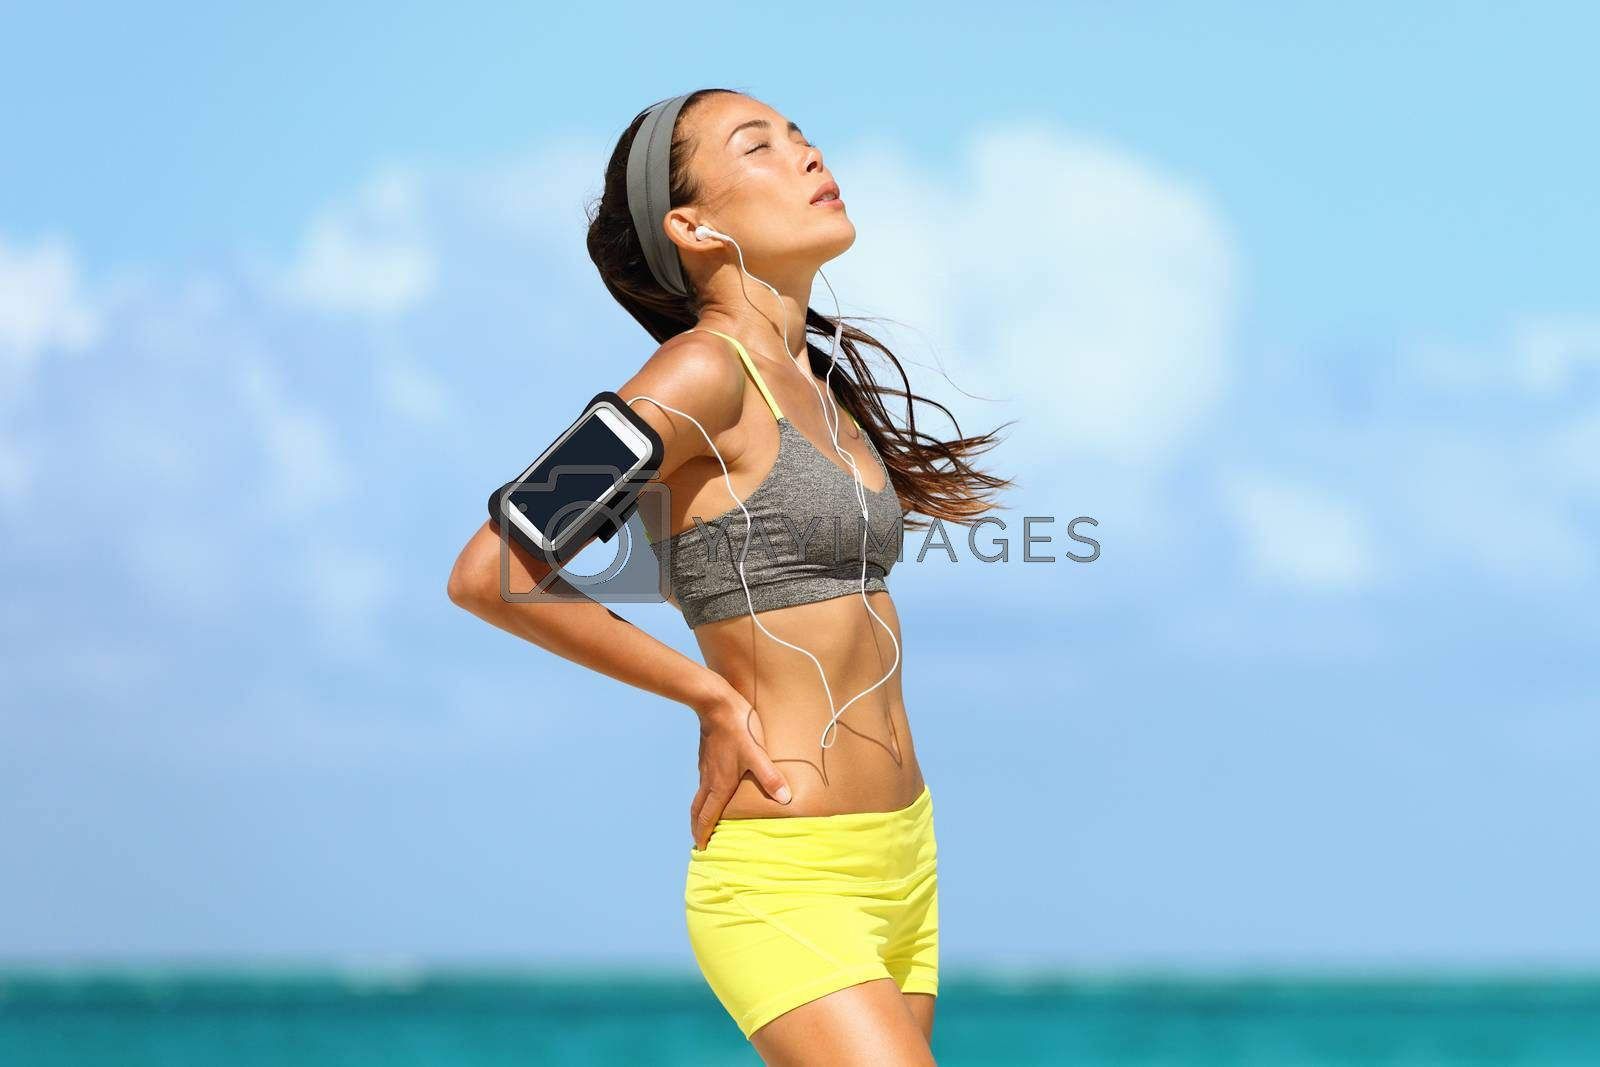 Tired woman runner on morning training at beach exhausted breathing listening to music with headphones and armband for smartphone. Heat exhaustion / dehydration concept.